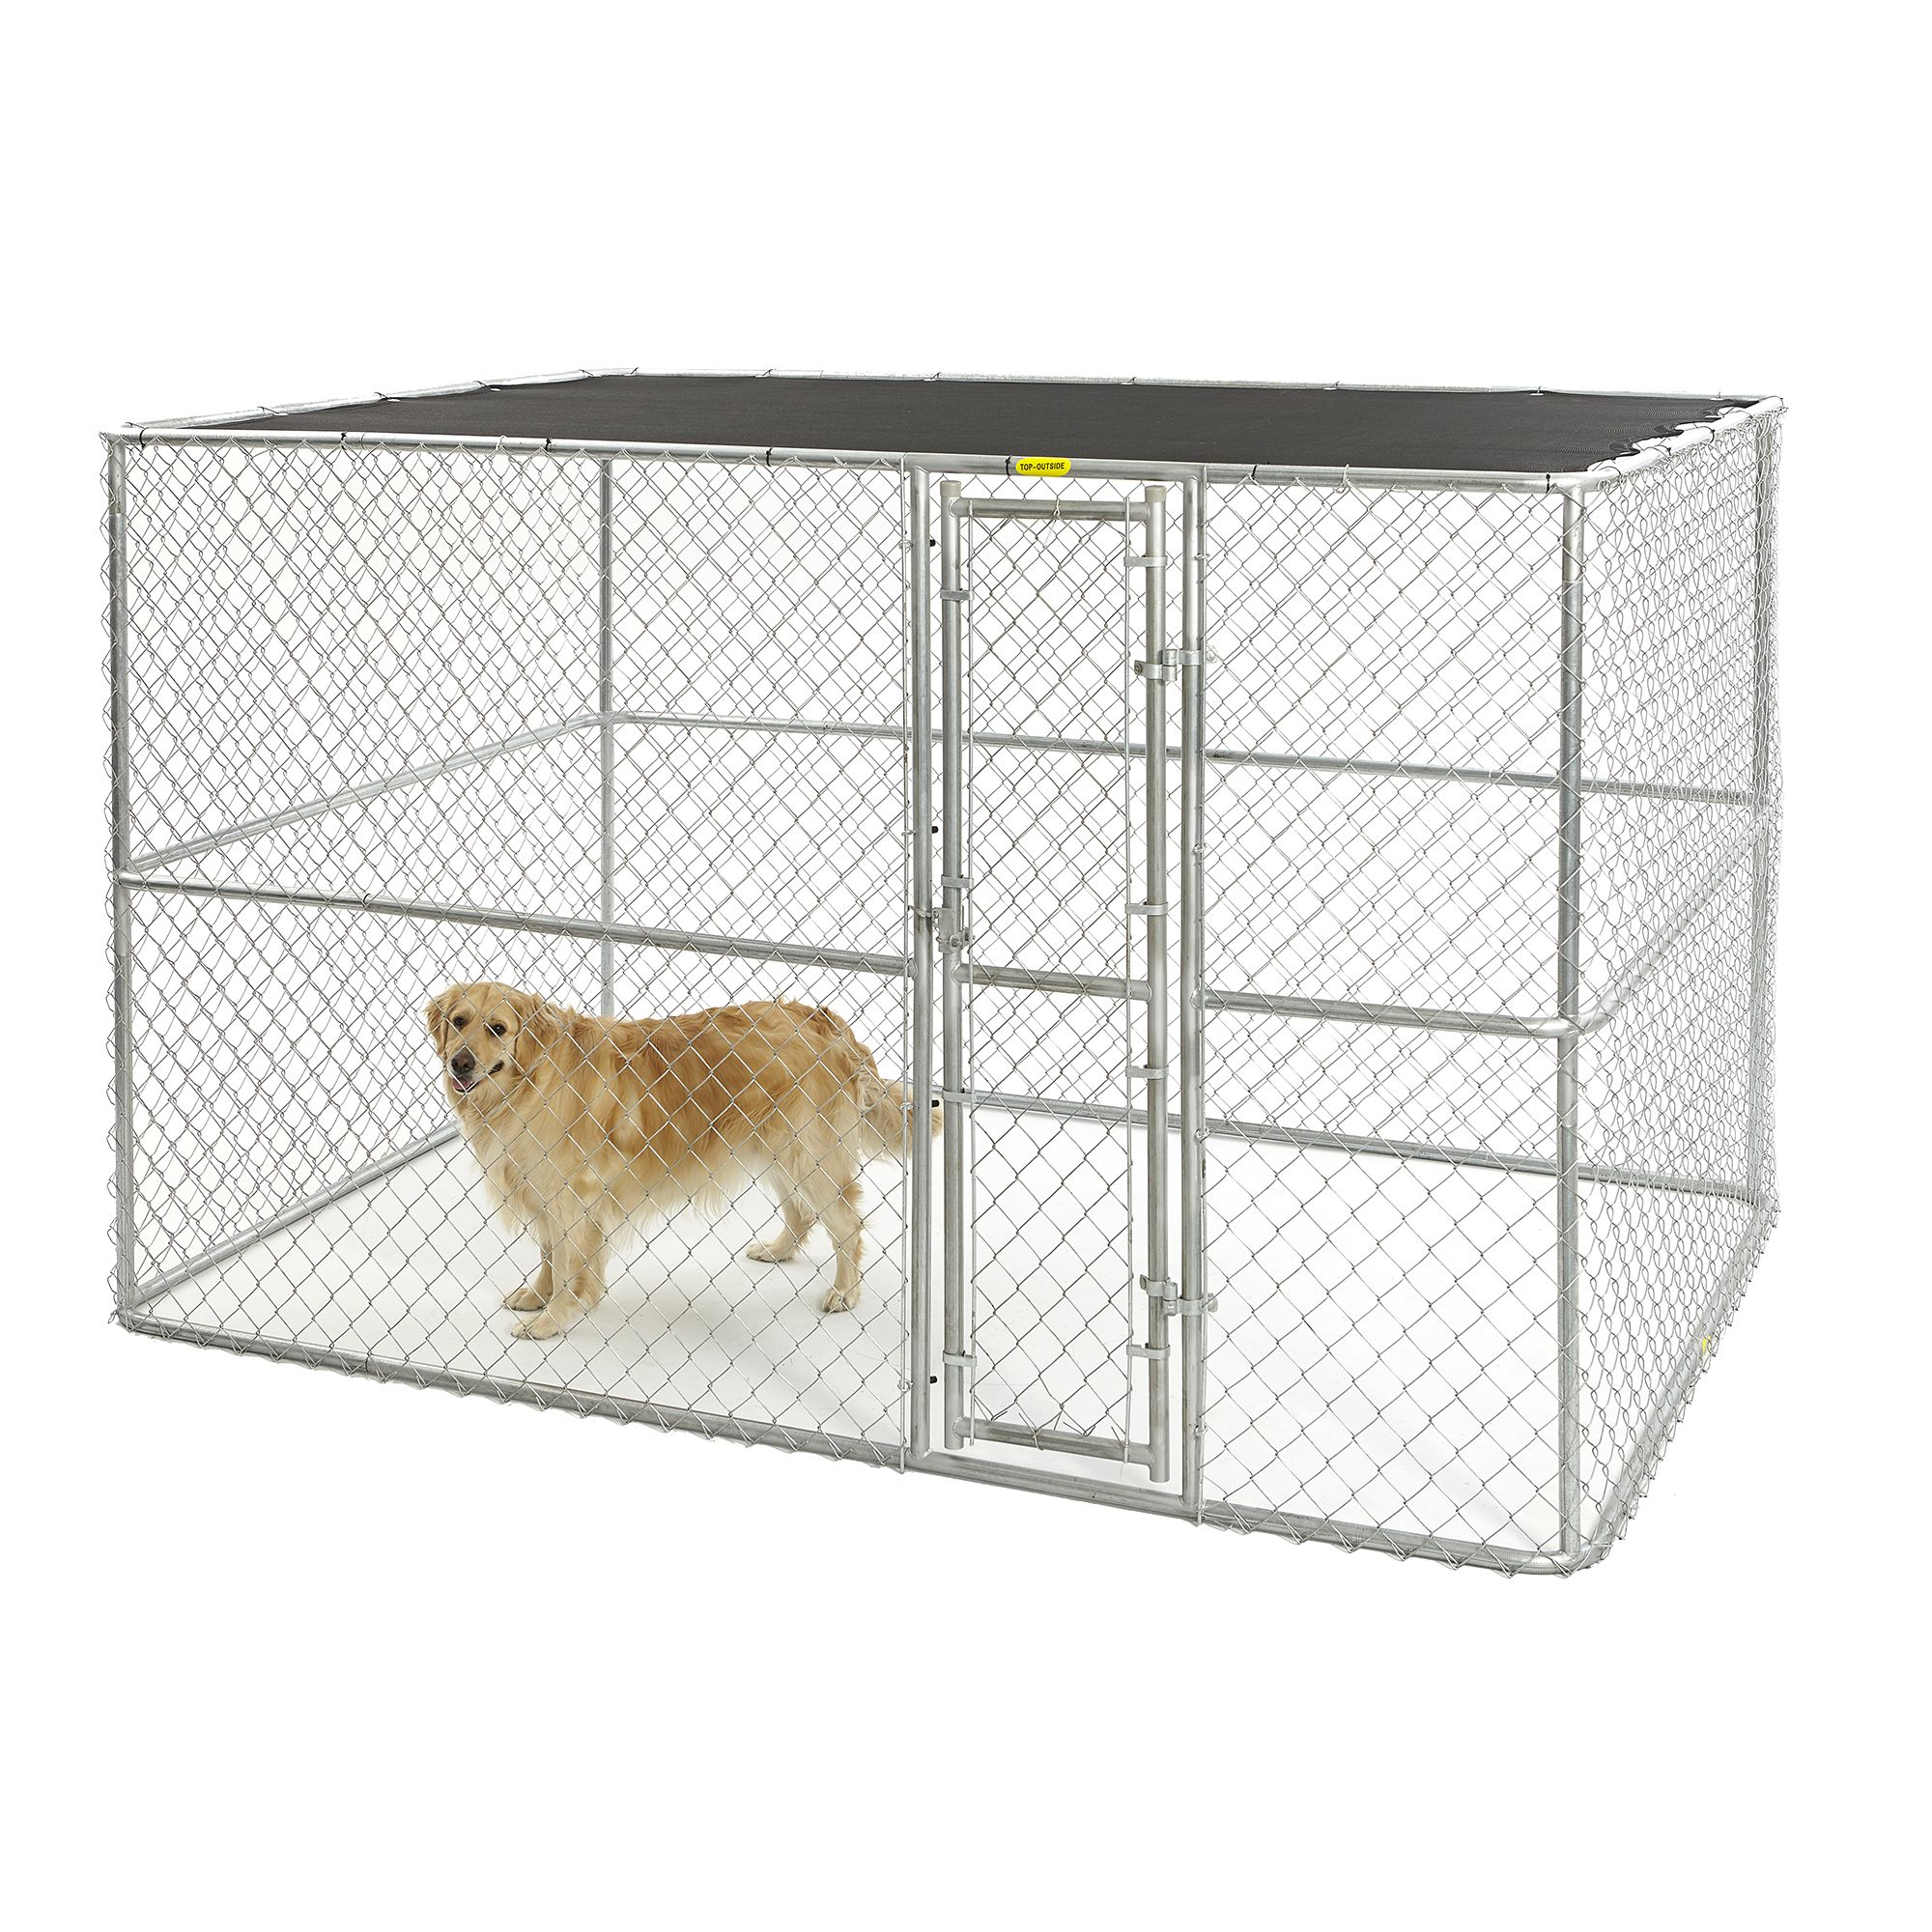 Midwest Chain Link Portable Kennel With Sunscreen Size 10l X 6w X 6h